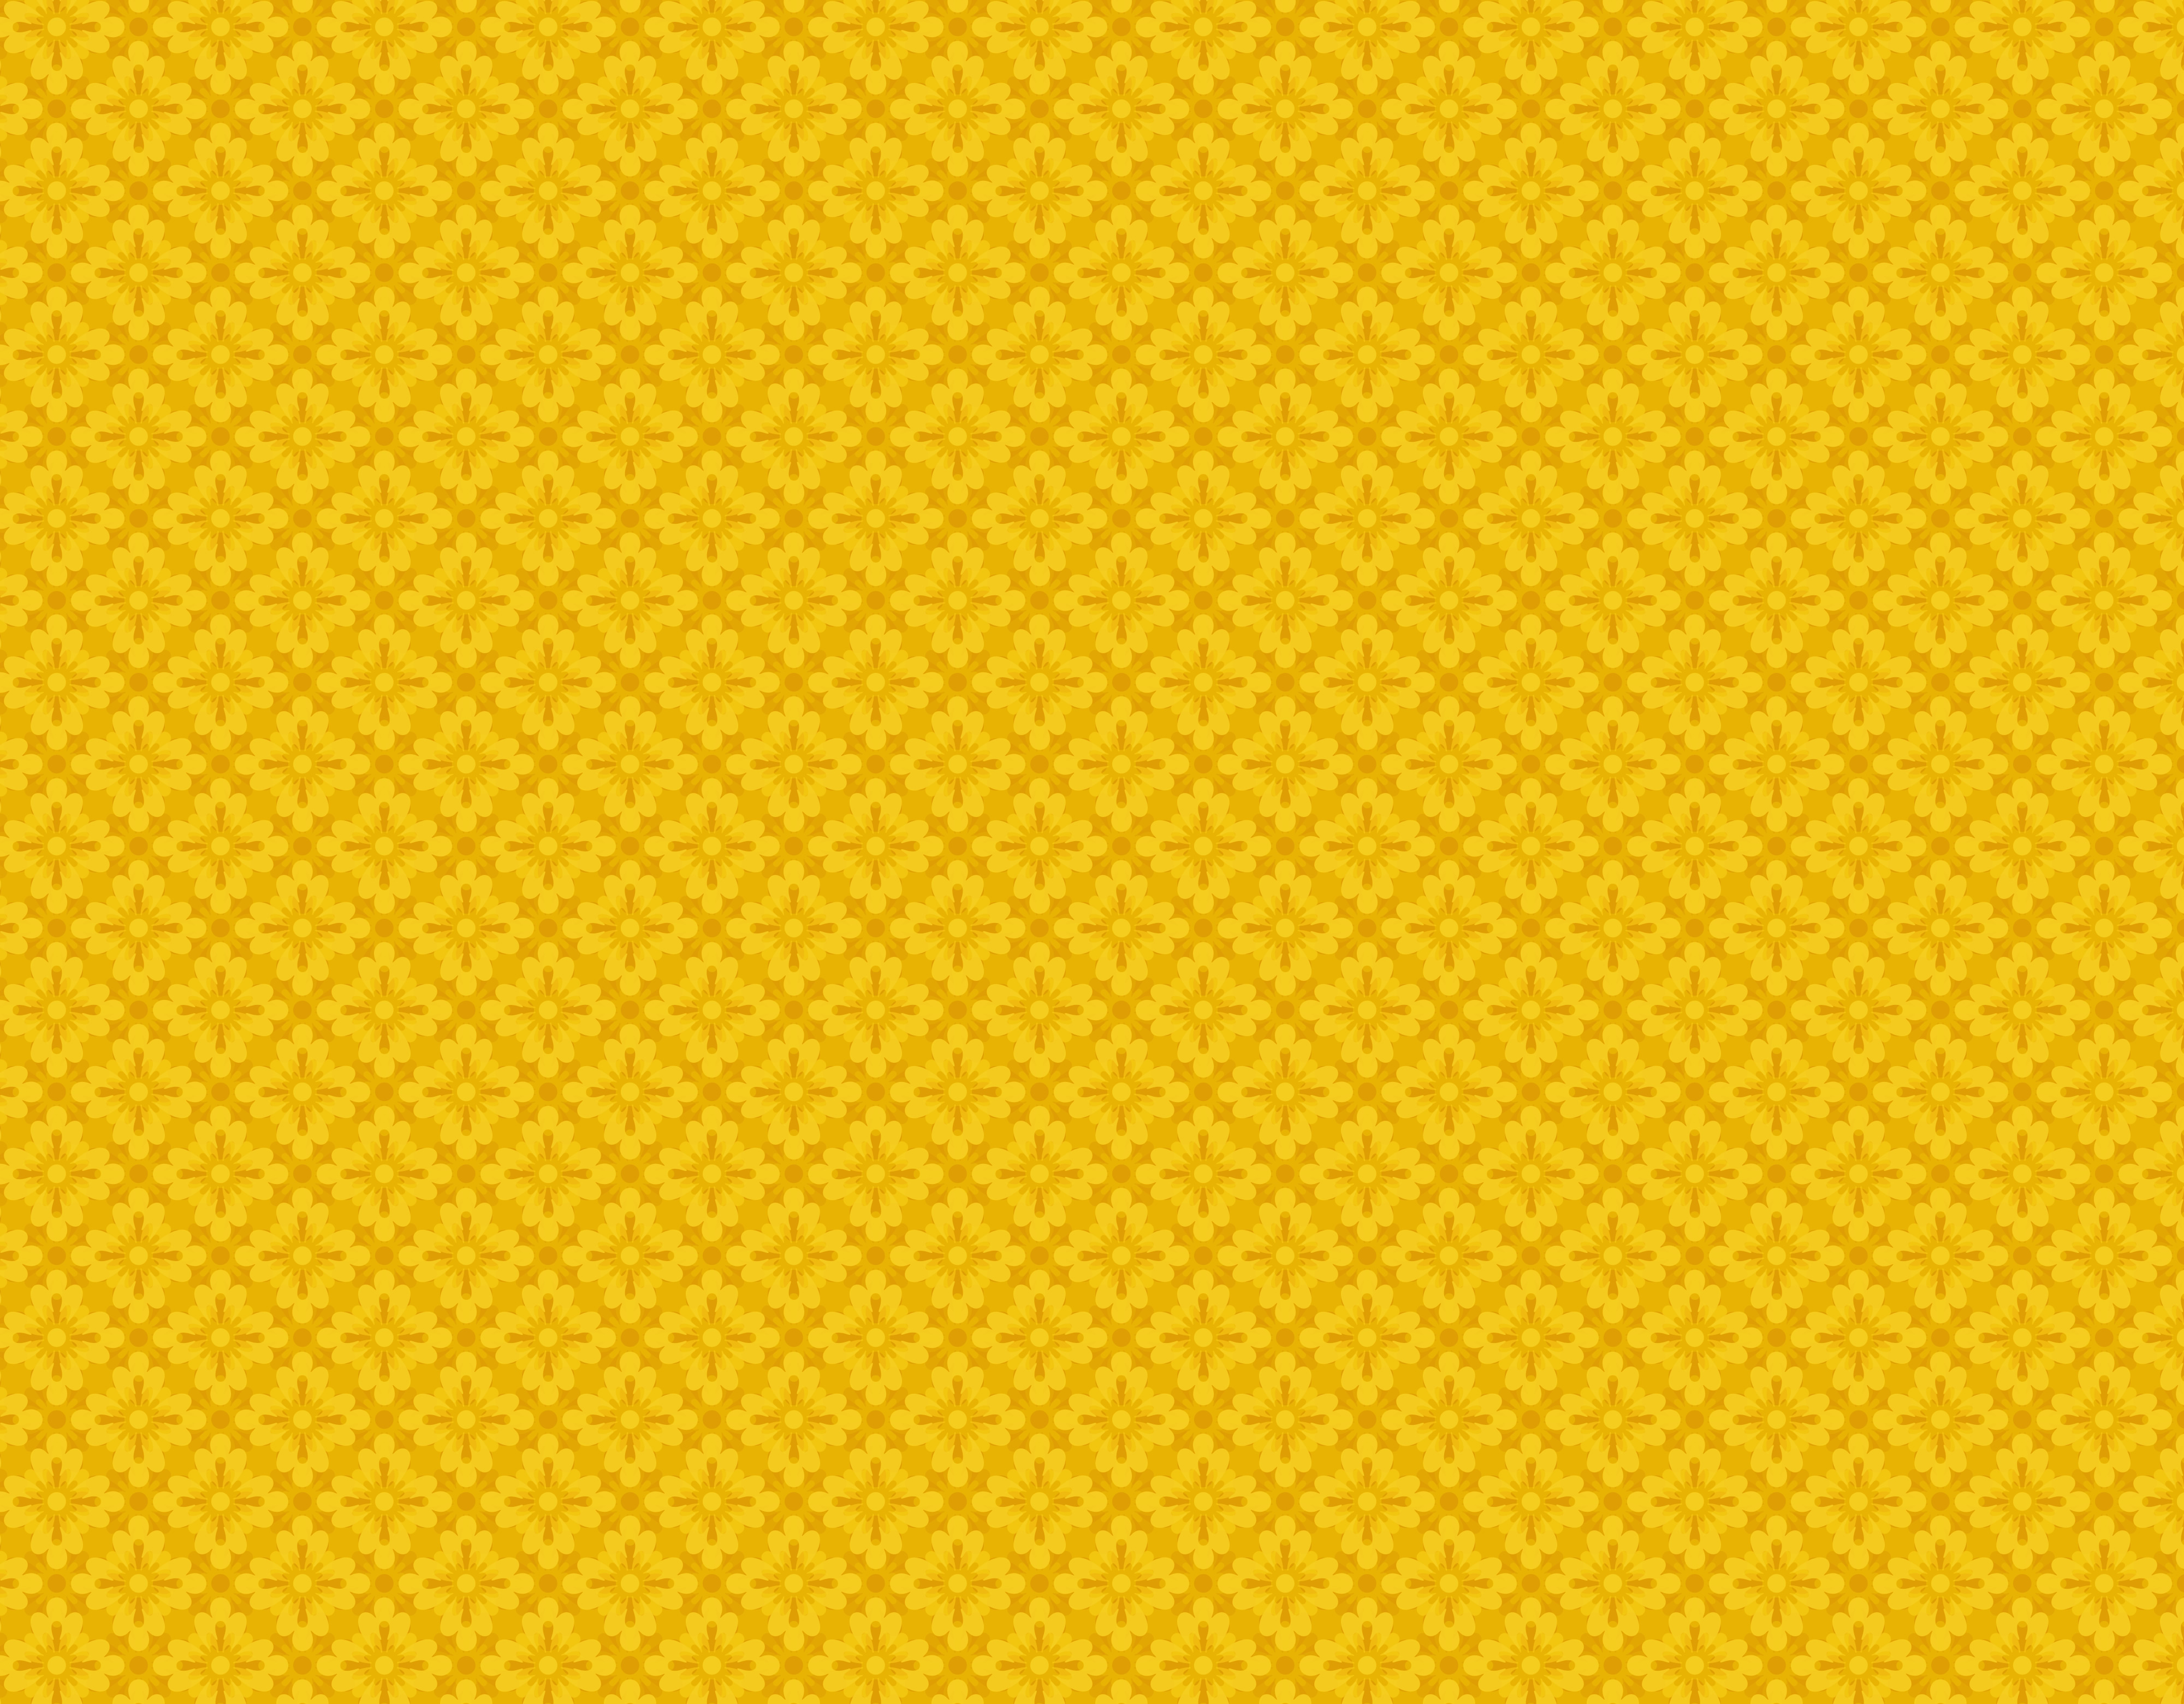 yellow pattern, background